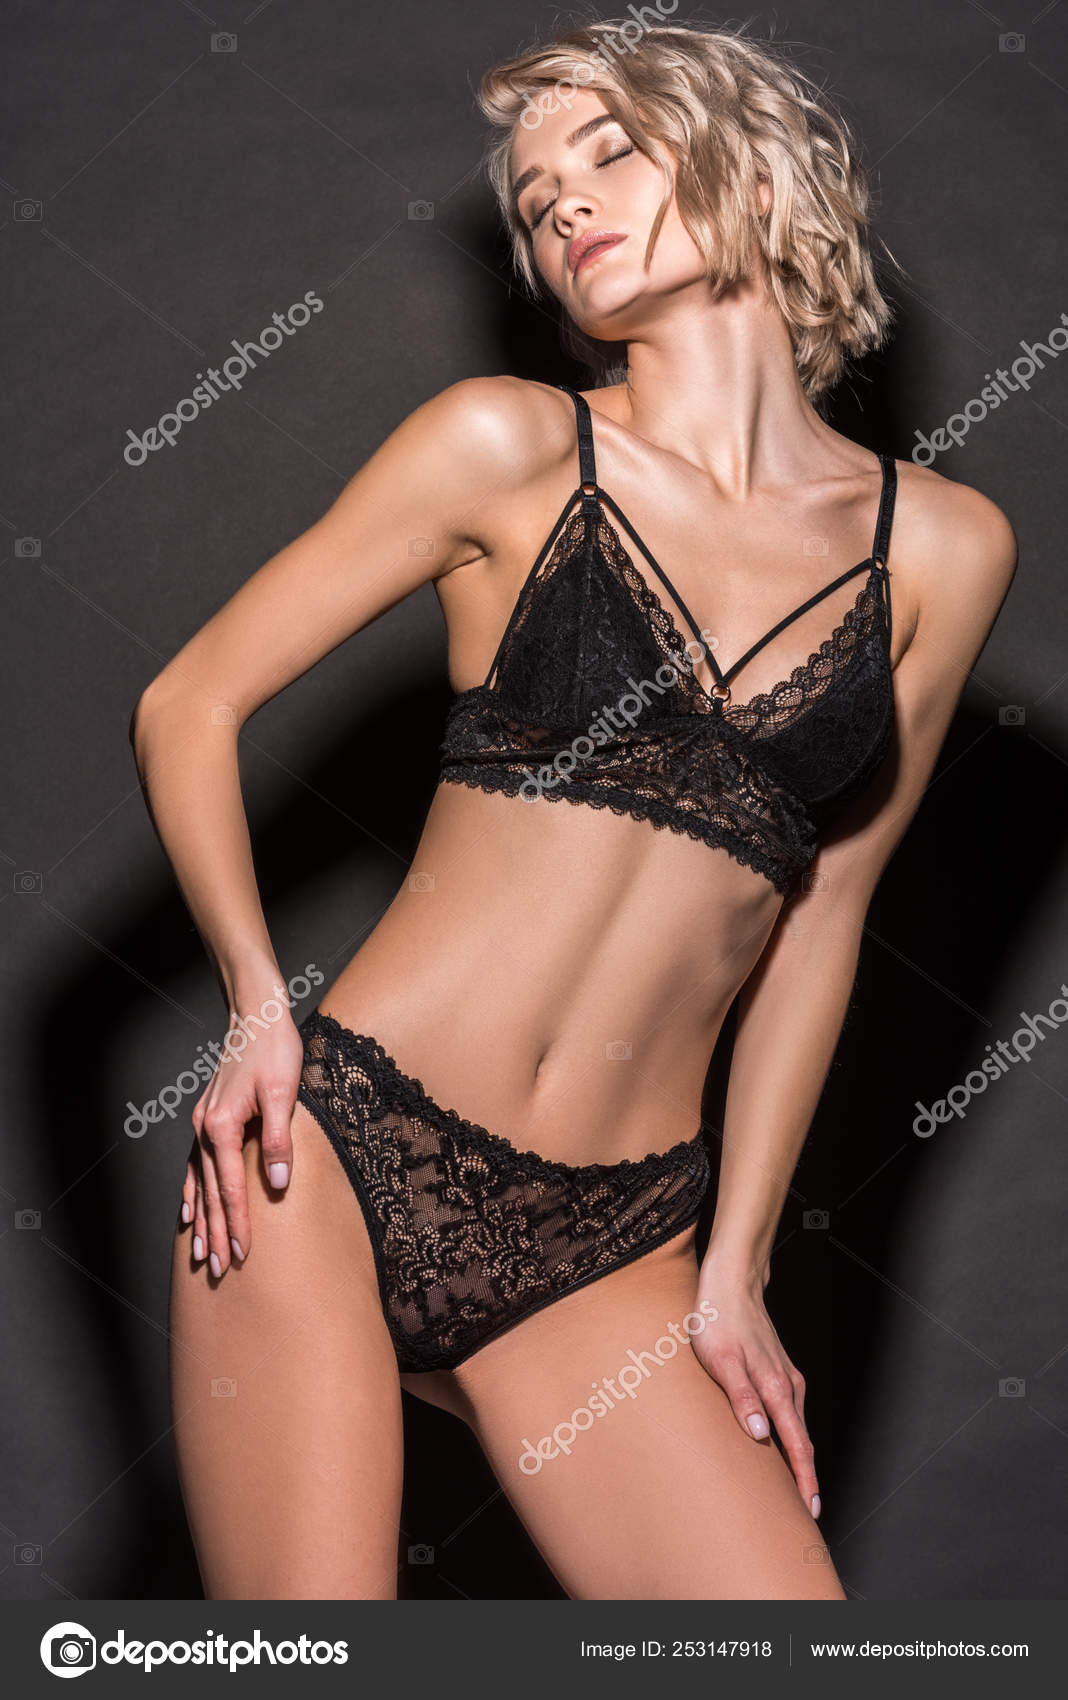 Gorgeous sexy blondes in lingerie Beautiful Sexy Blonde Girl Lace Lingerie Posing Black Stock Photo By C Allaserebrina 253147918